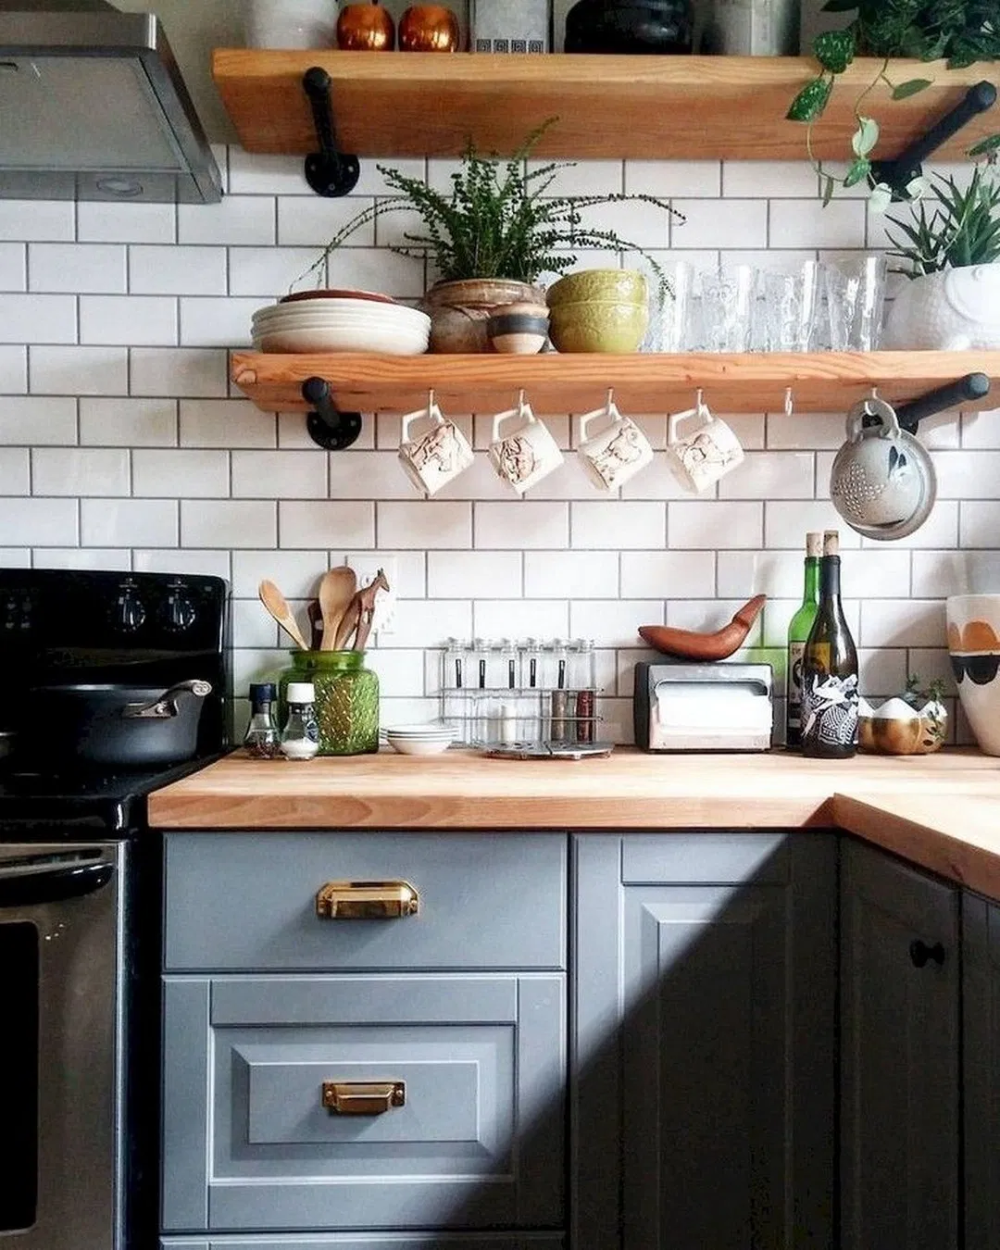 pin by sarah edwards on kitchen in 2020 kitchen cabinets and countertops country kitchen on farmhouse kitchen decor countertop id=66901